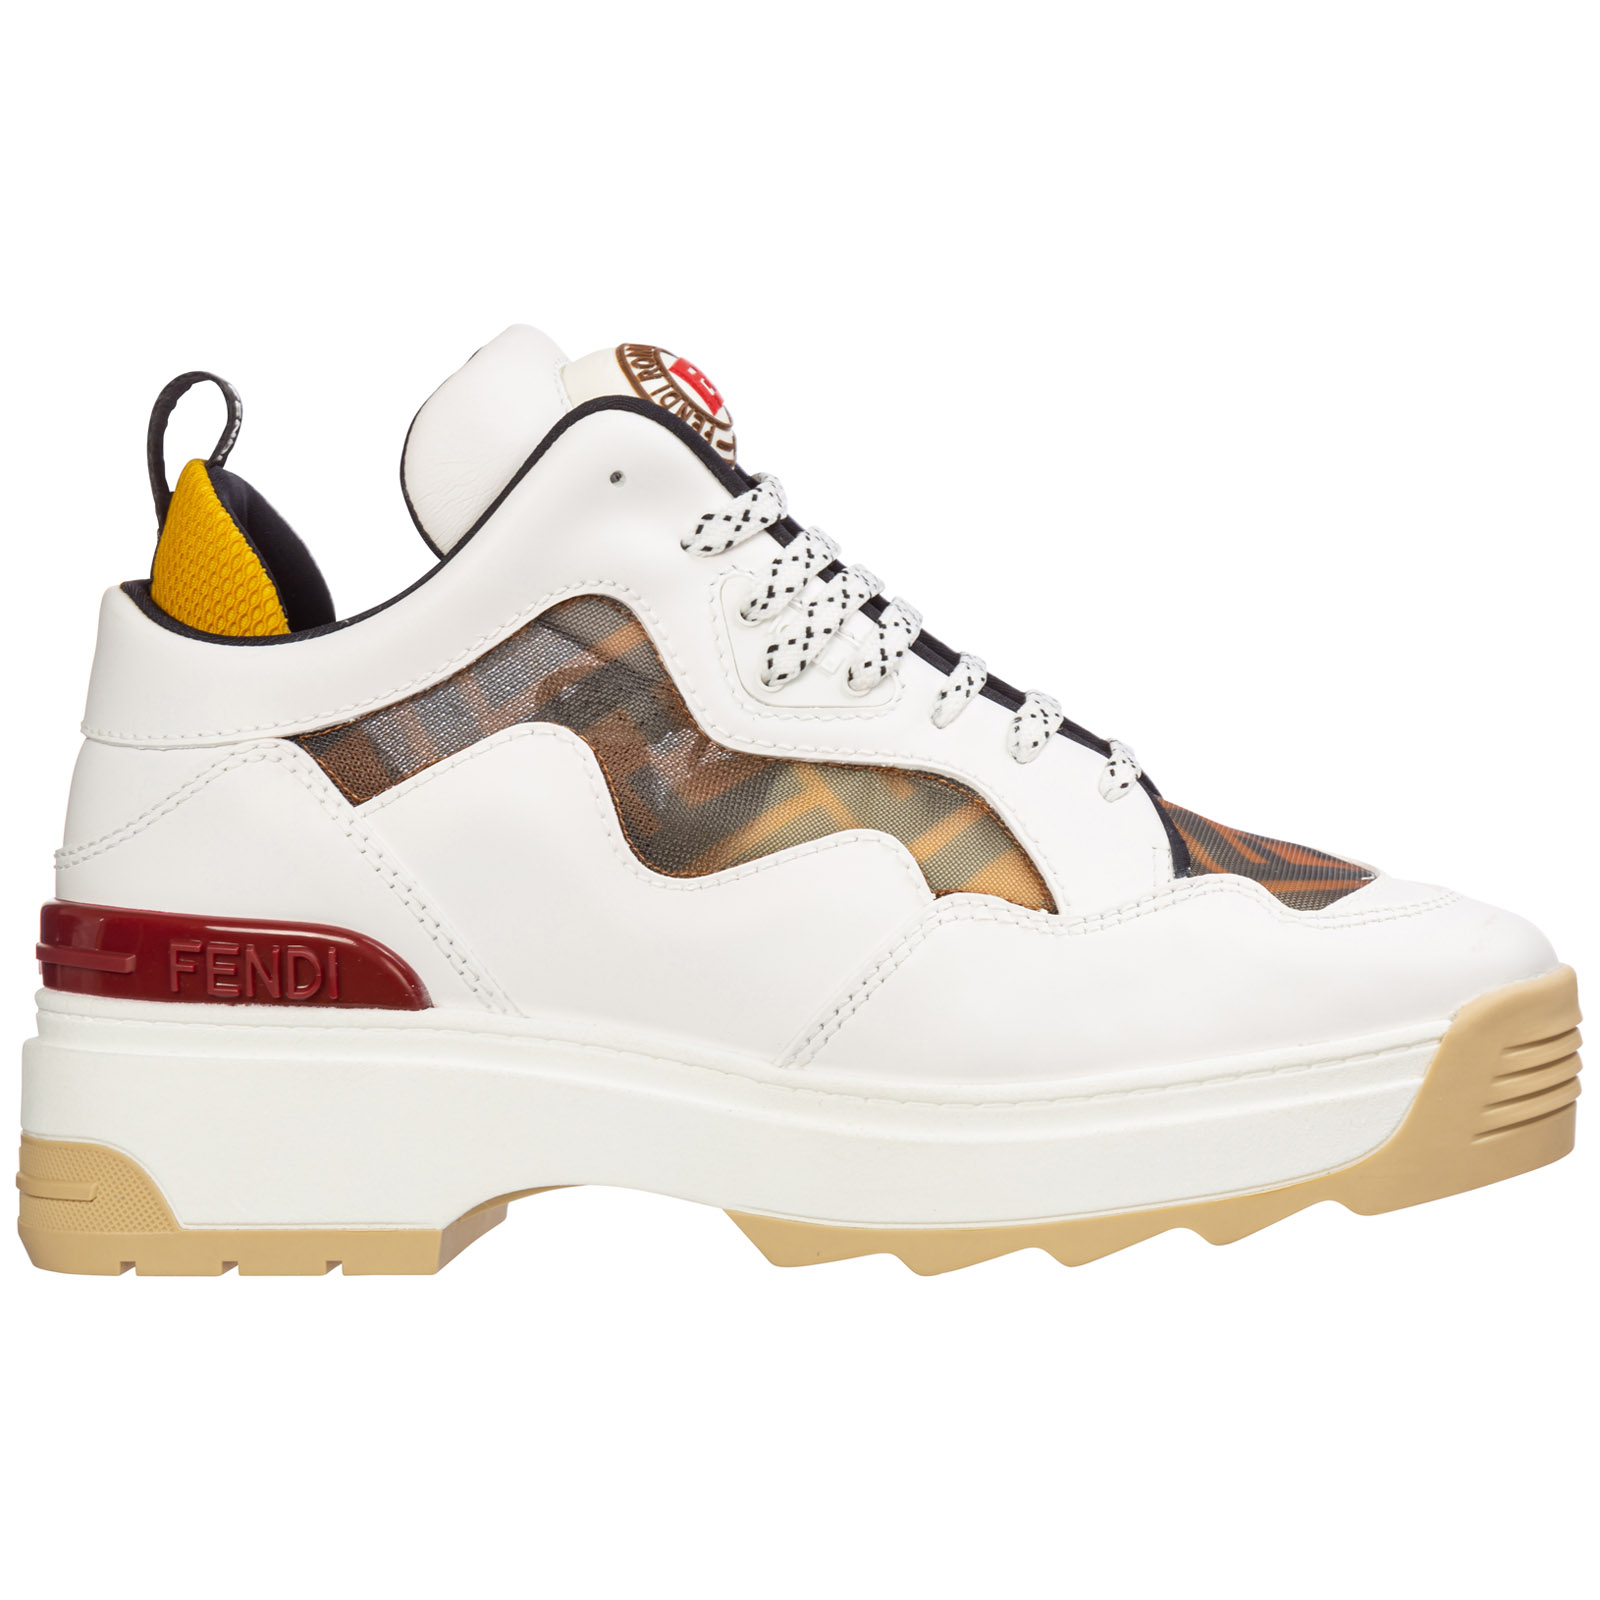 Fendi Sneakers WOMEN'S SHOES LEATHER TRAINERS SNEAKERS